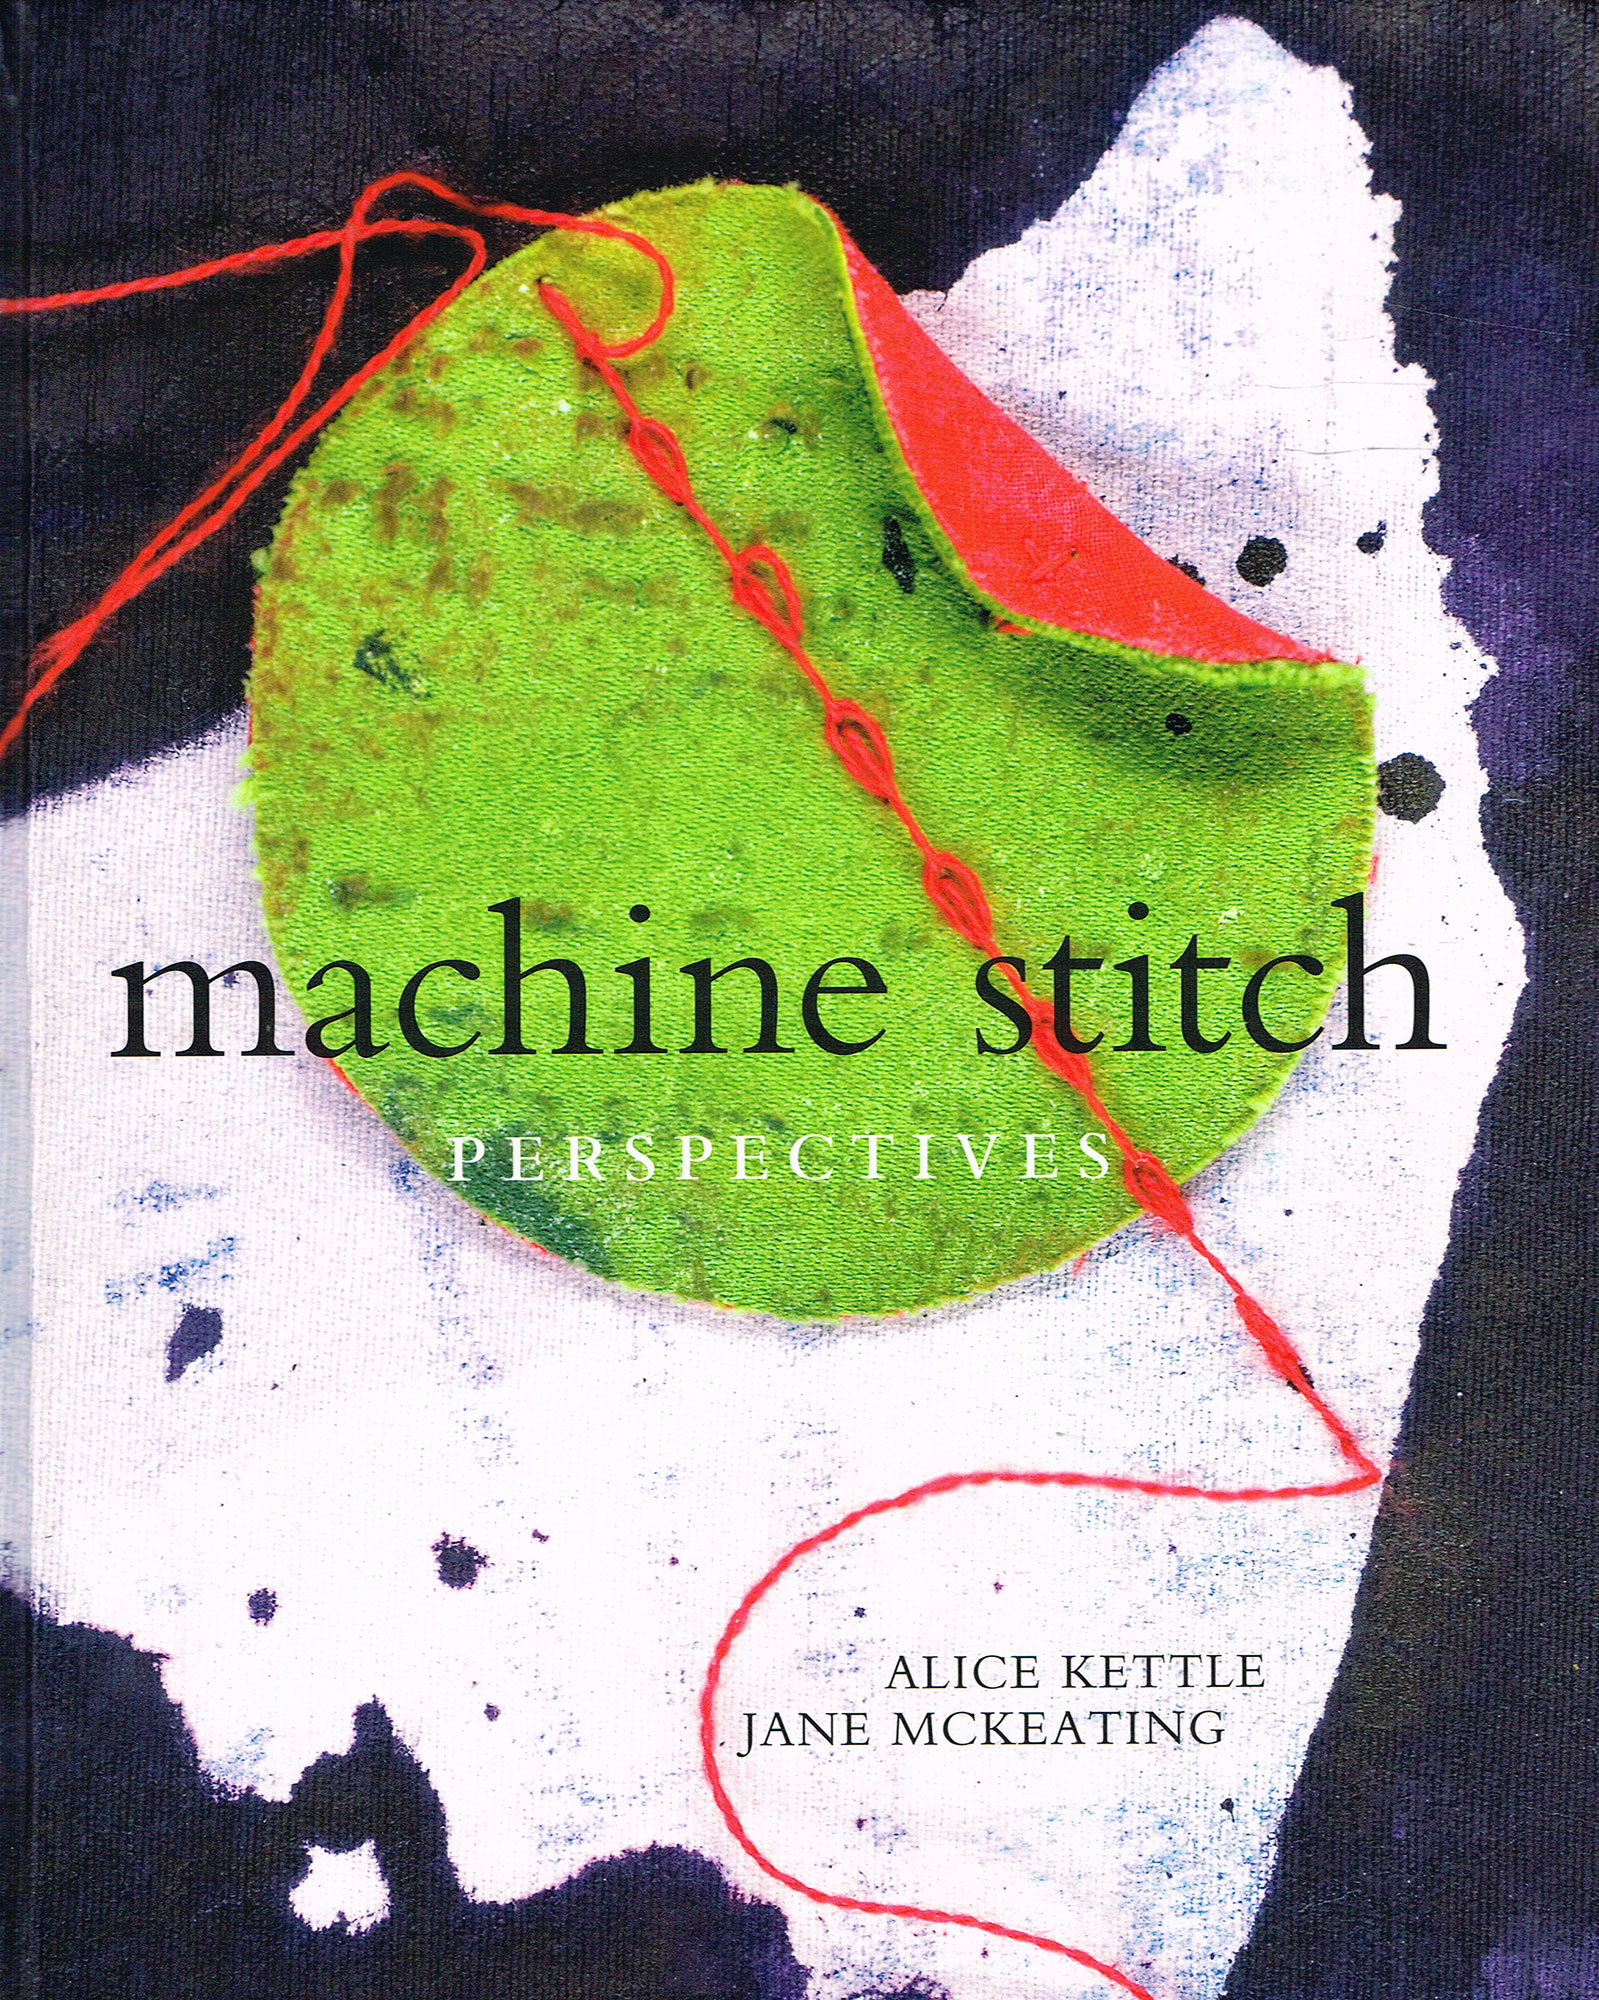 Jane McKeating, Machine stitch perspectives